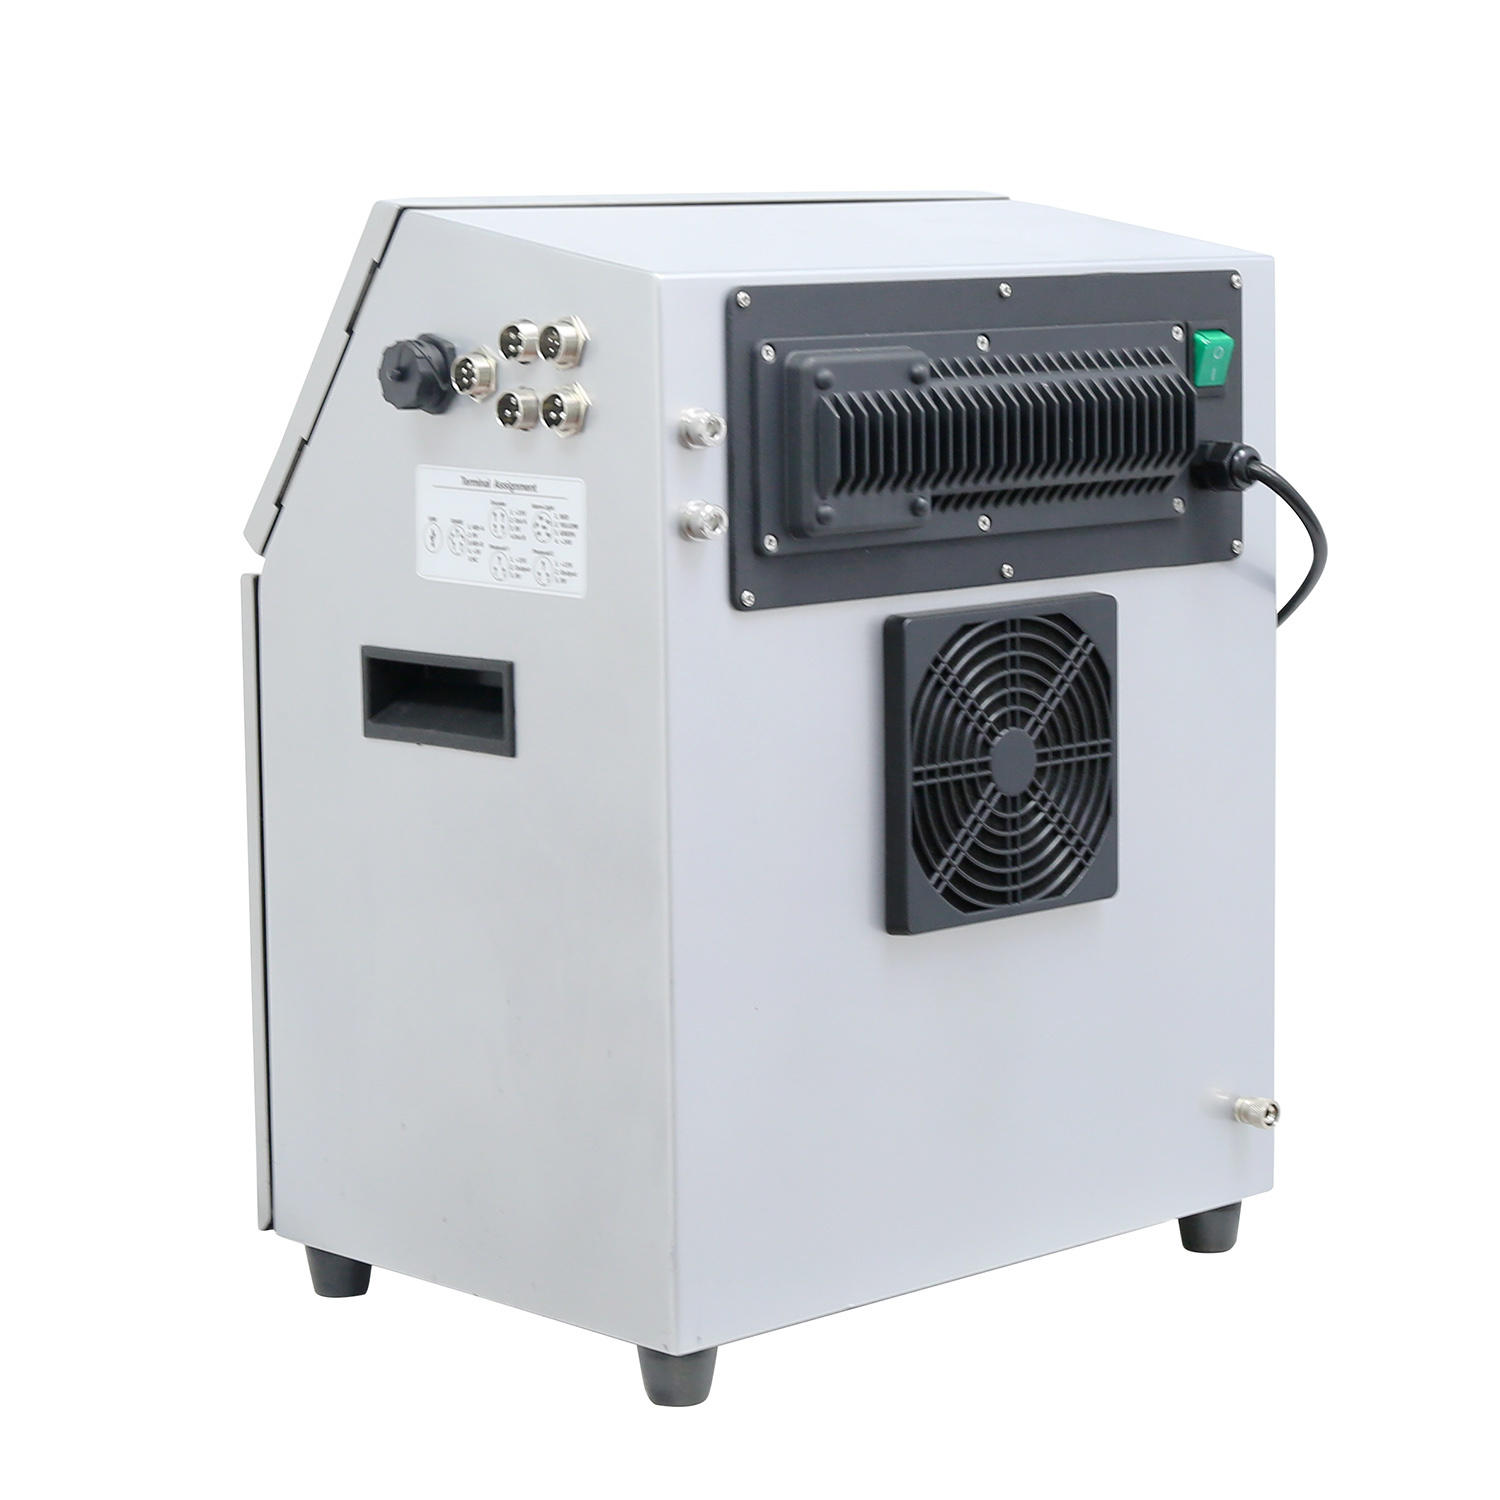 Lead Tech Lt800 Logo Imprint Inkjet Printer